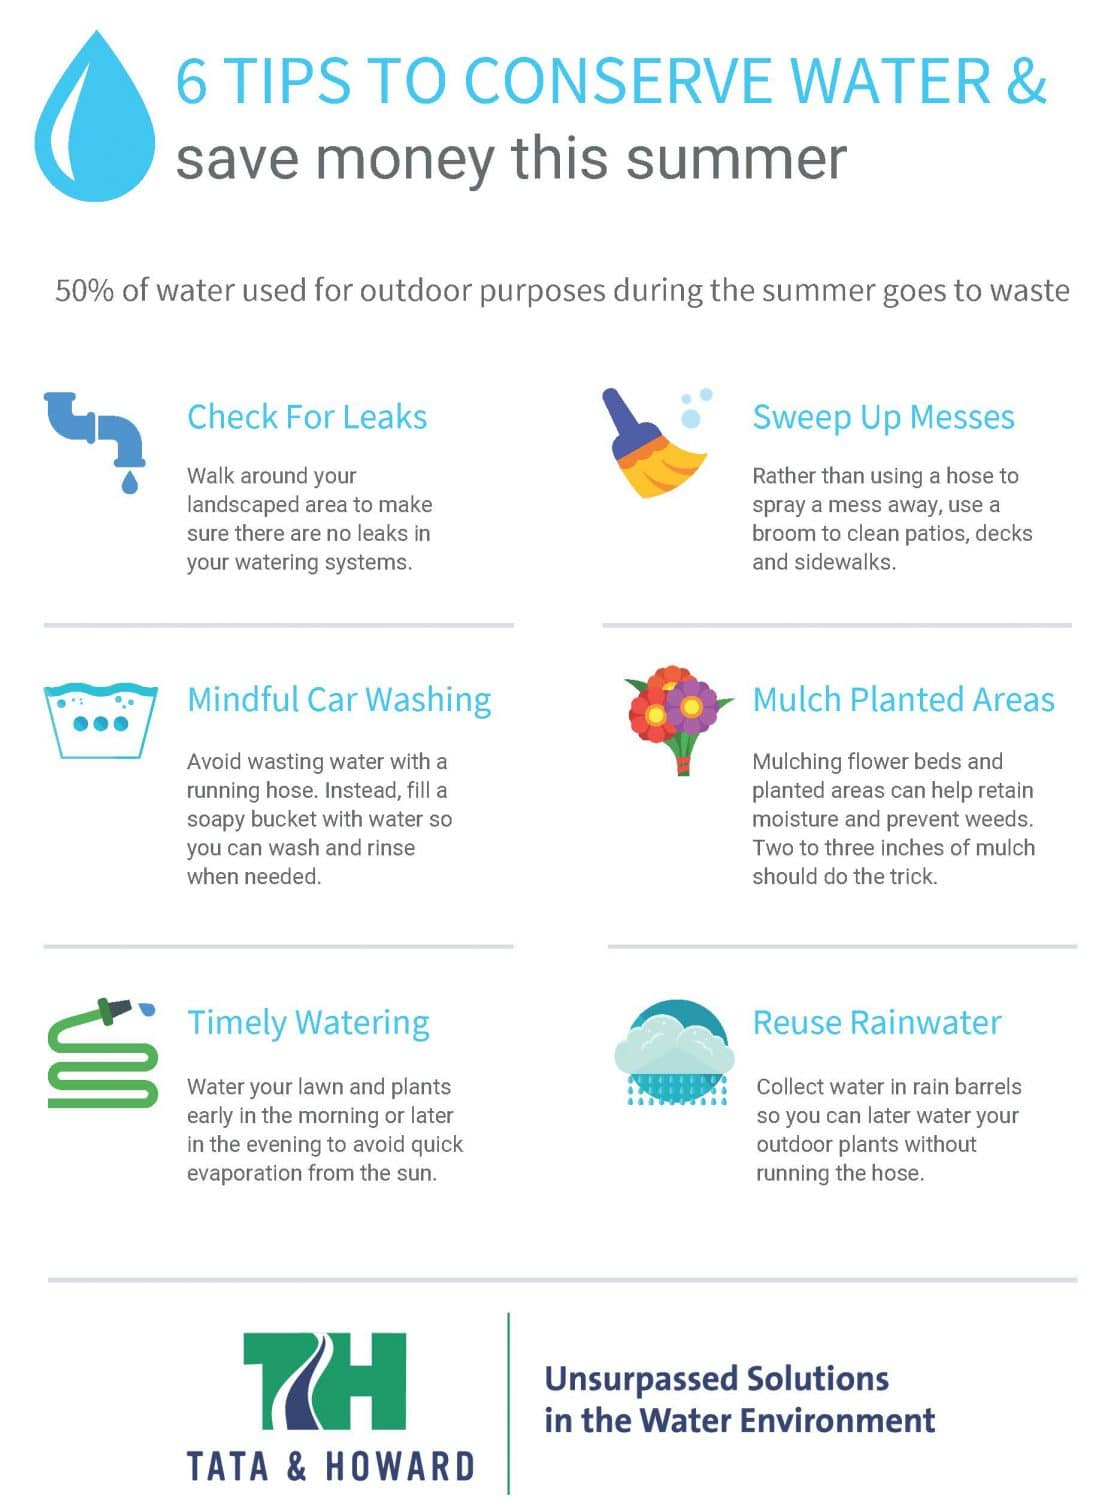 infographic describing six tips to conserve water and save money during the summer months